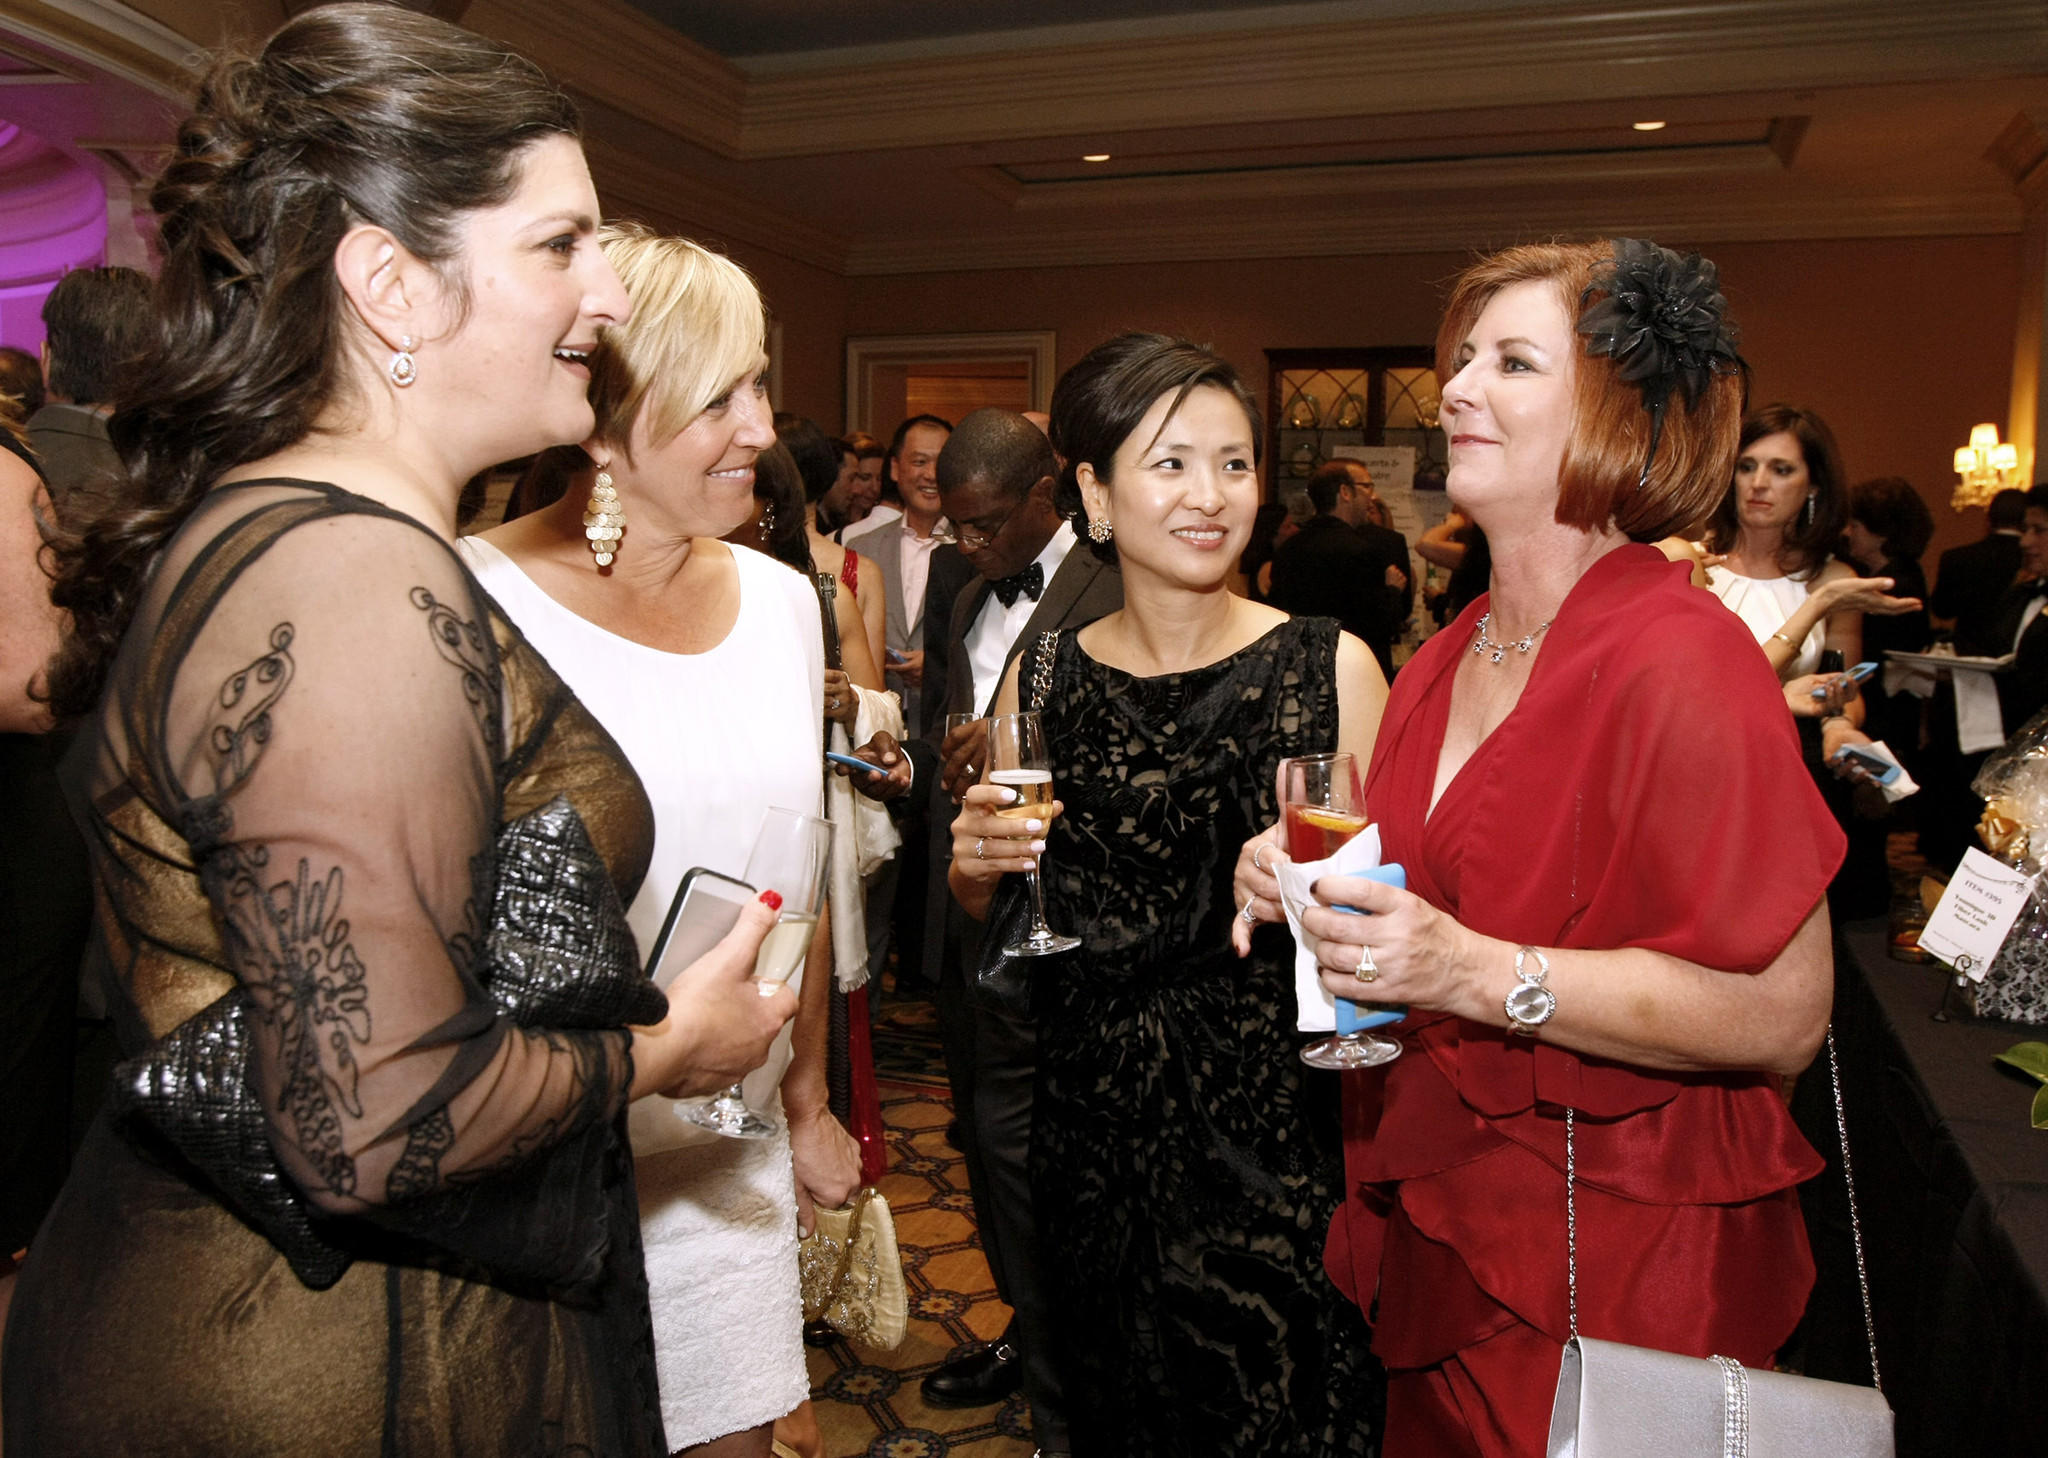 Soo Choi, second from right, and Dale Storz, right, chat with friends at the La Cañada Flintridge Educational Foundation 23rd Annual Spring Gala at the Langham Huntington in Pasadena on Saturday, March 15, 2014.